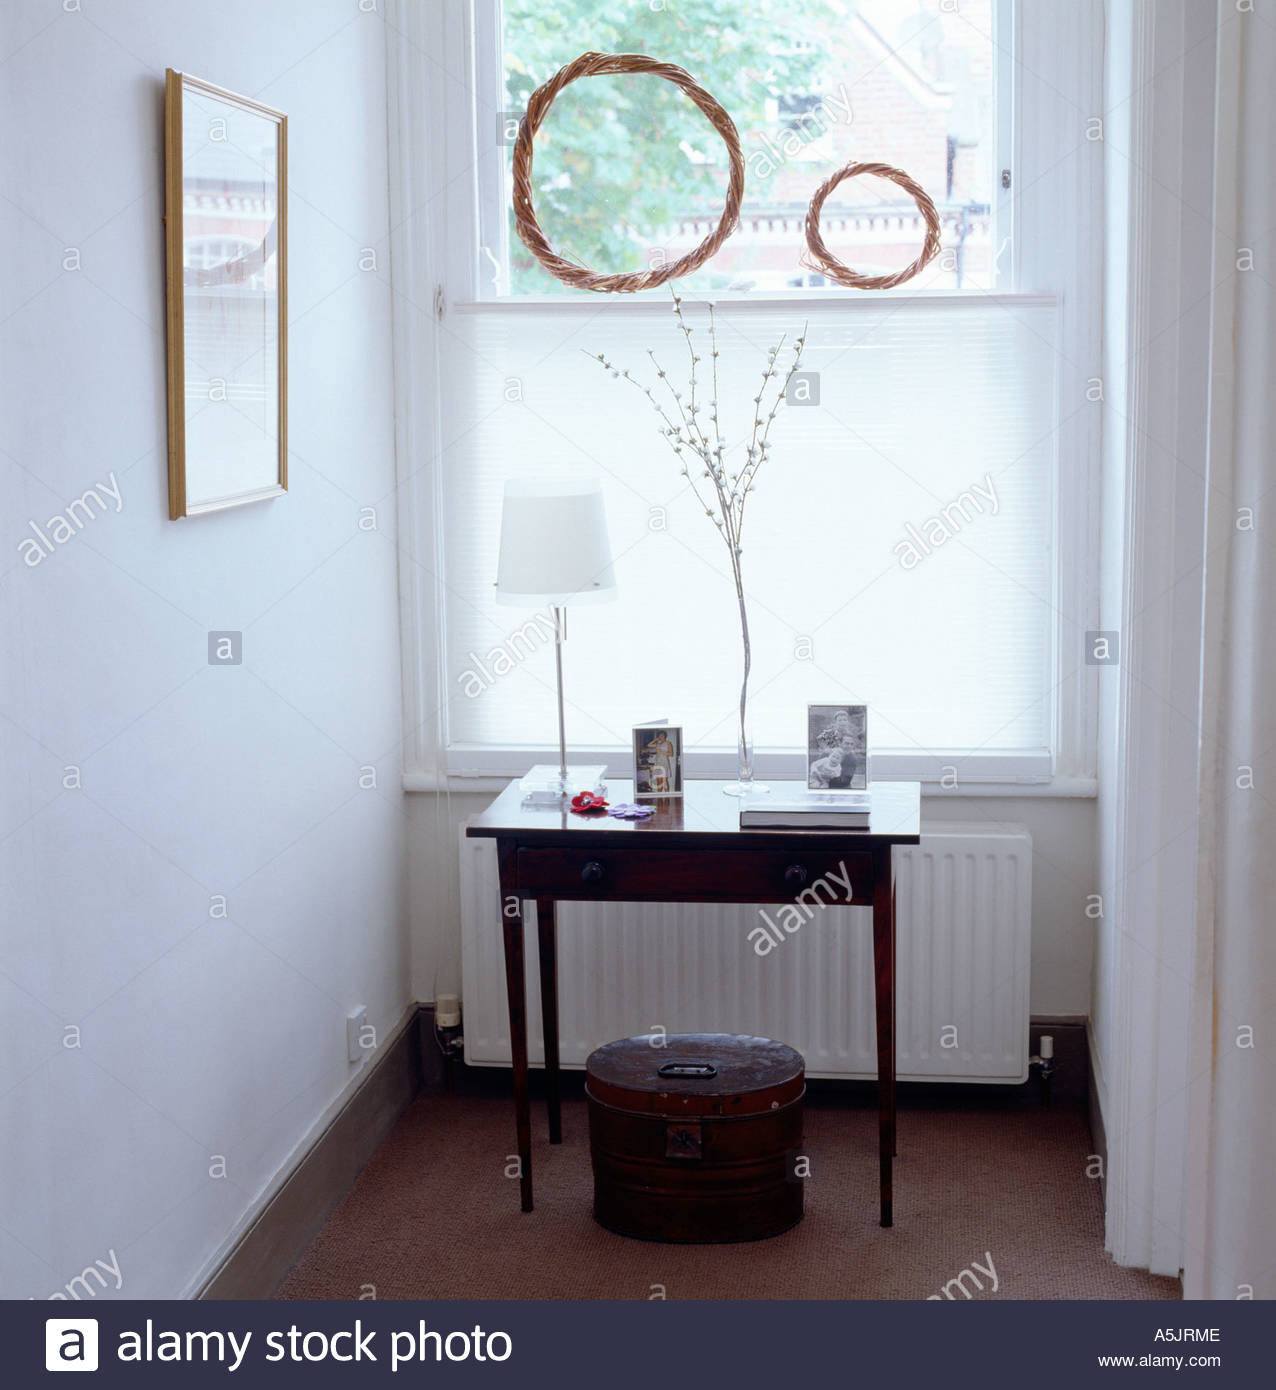 Upstairs hall landing with table, ornaments and window